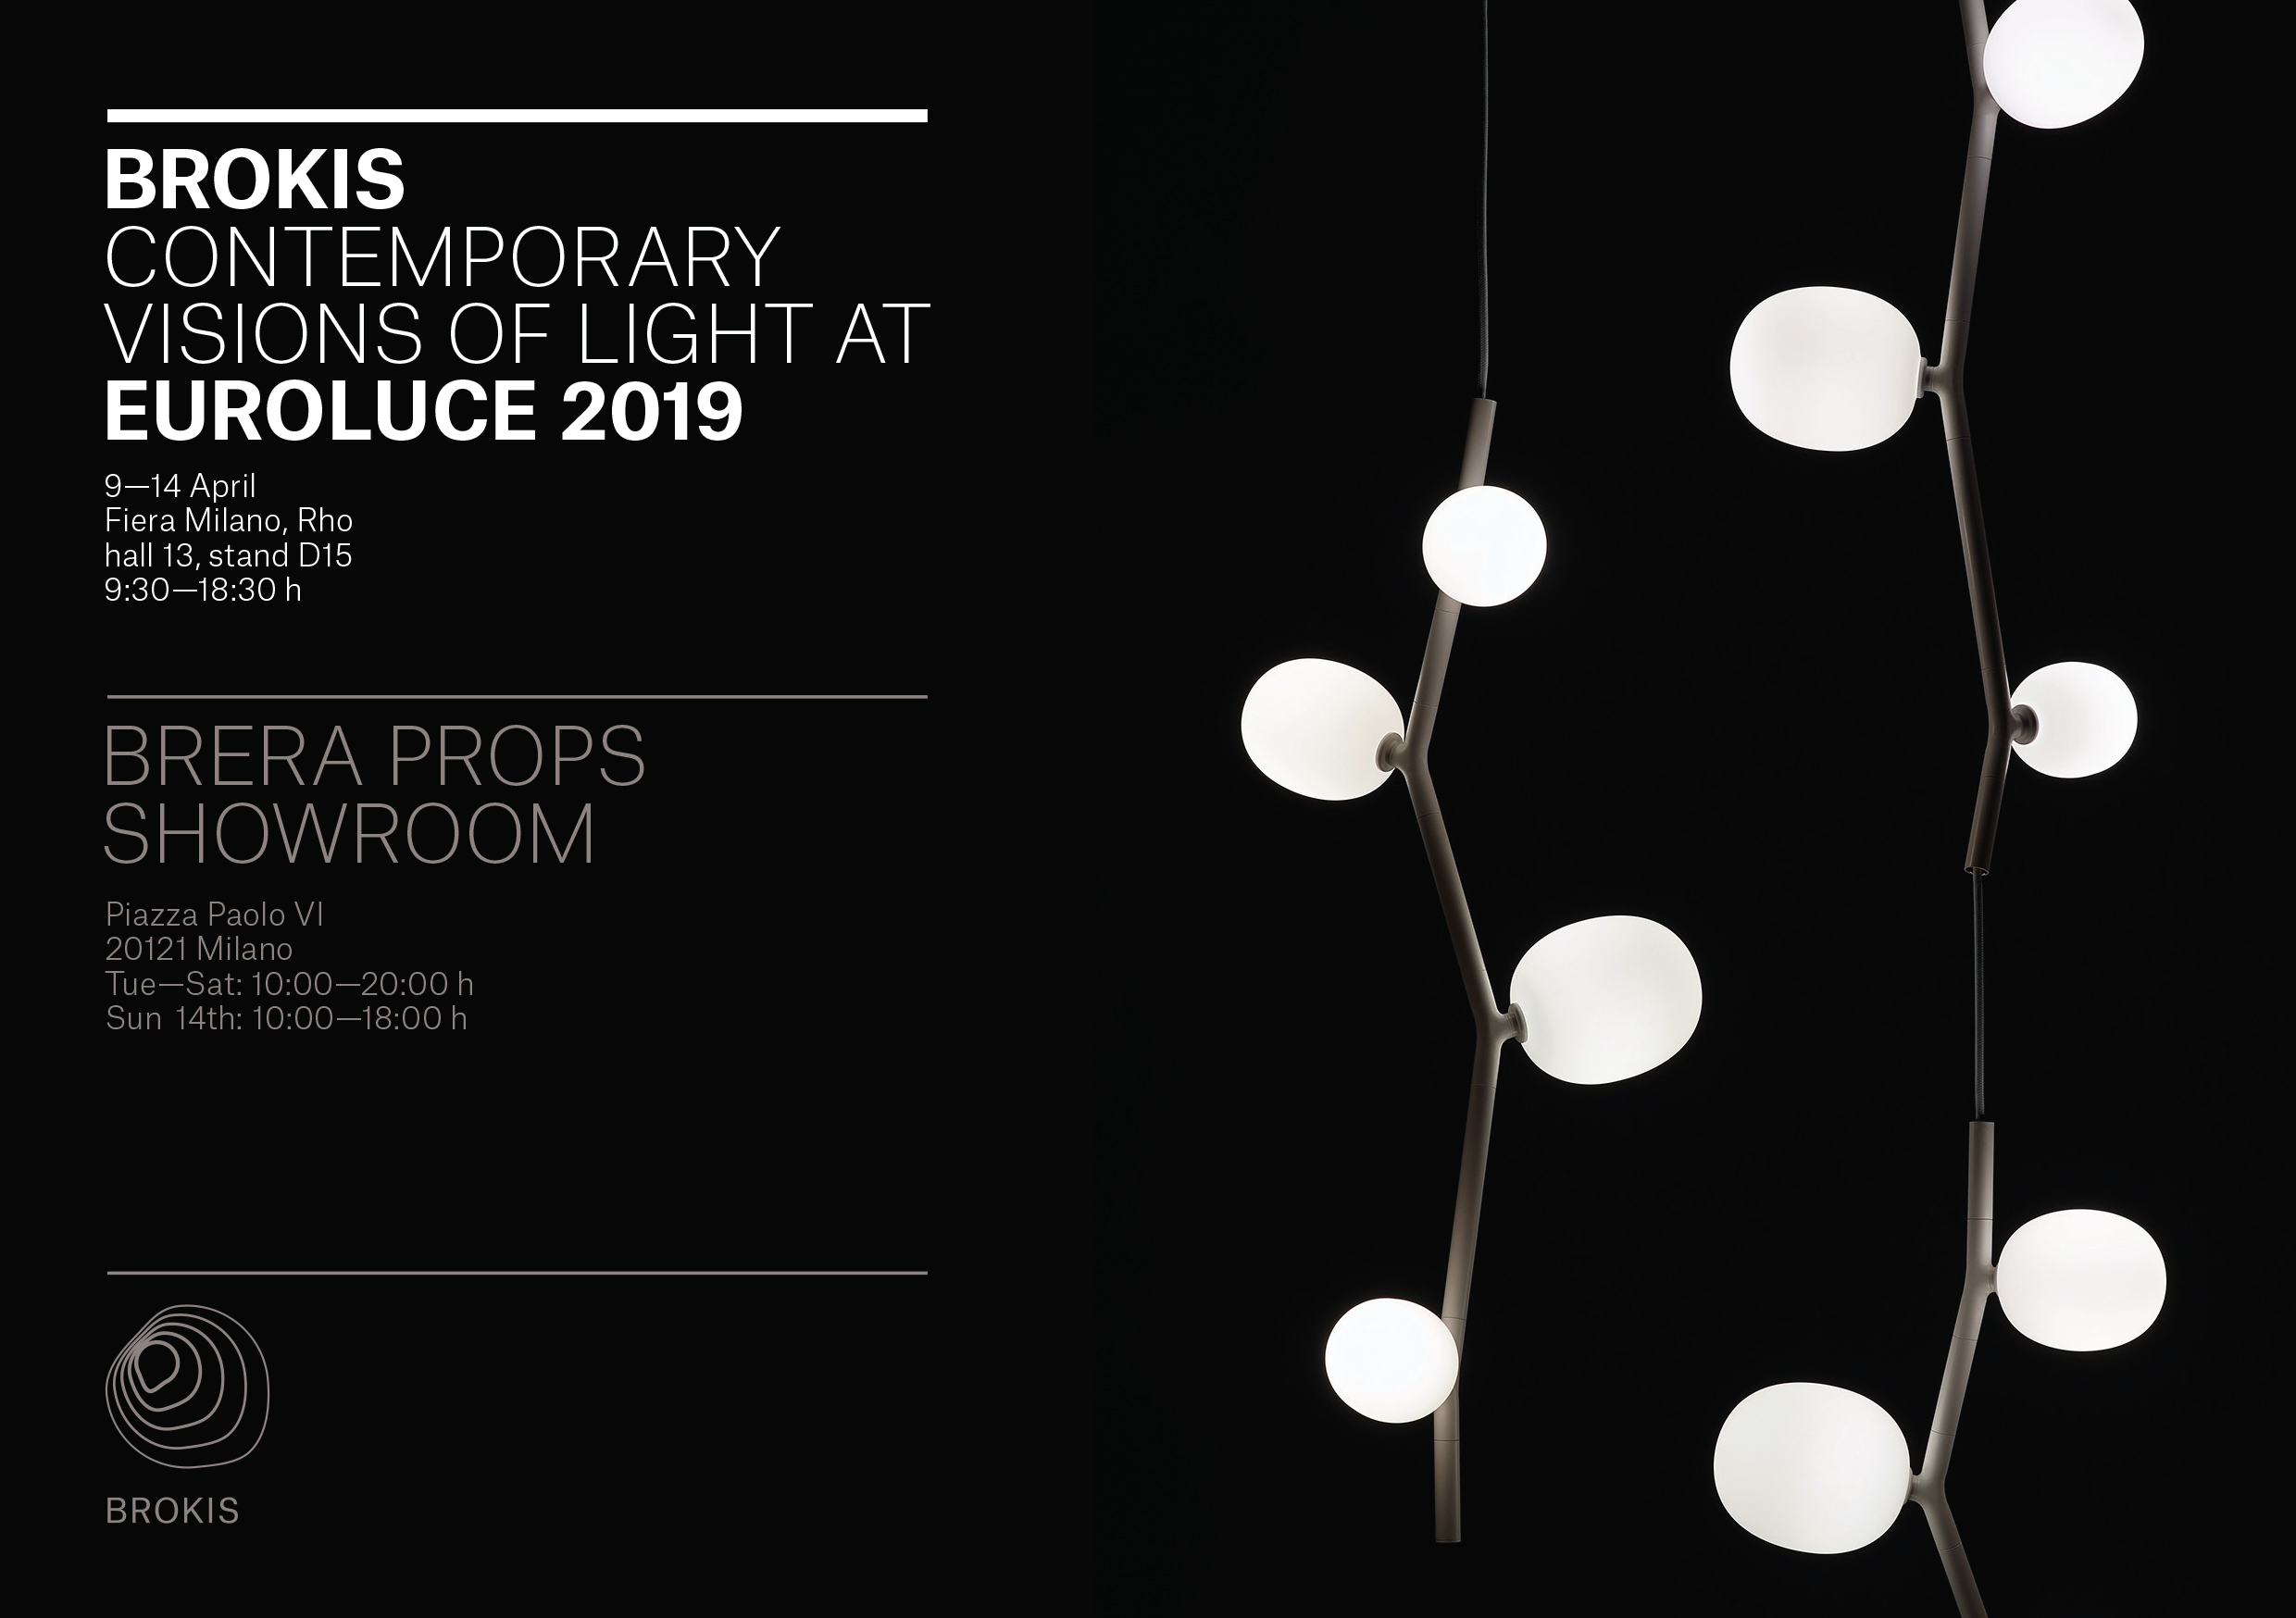 BROKIS AT EUROLUCE 2019 IN A NEW LIGHT!